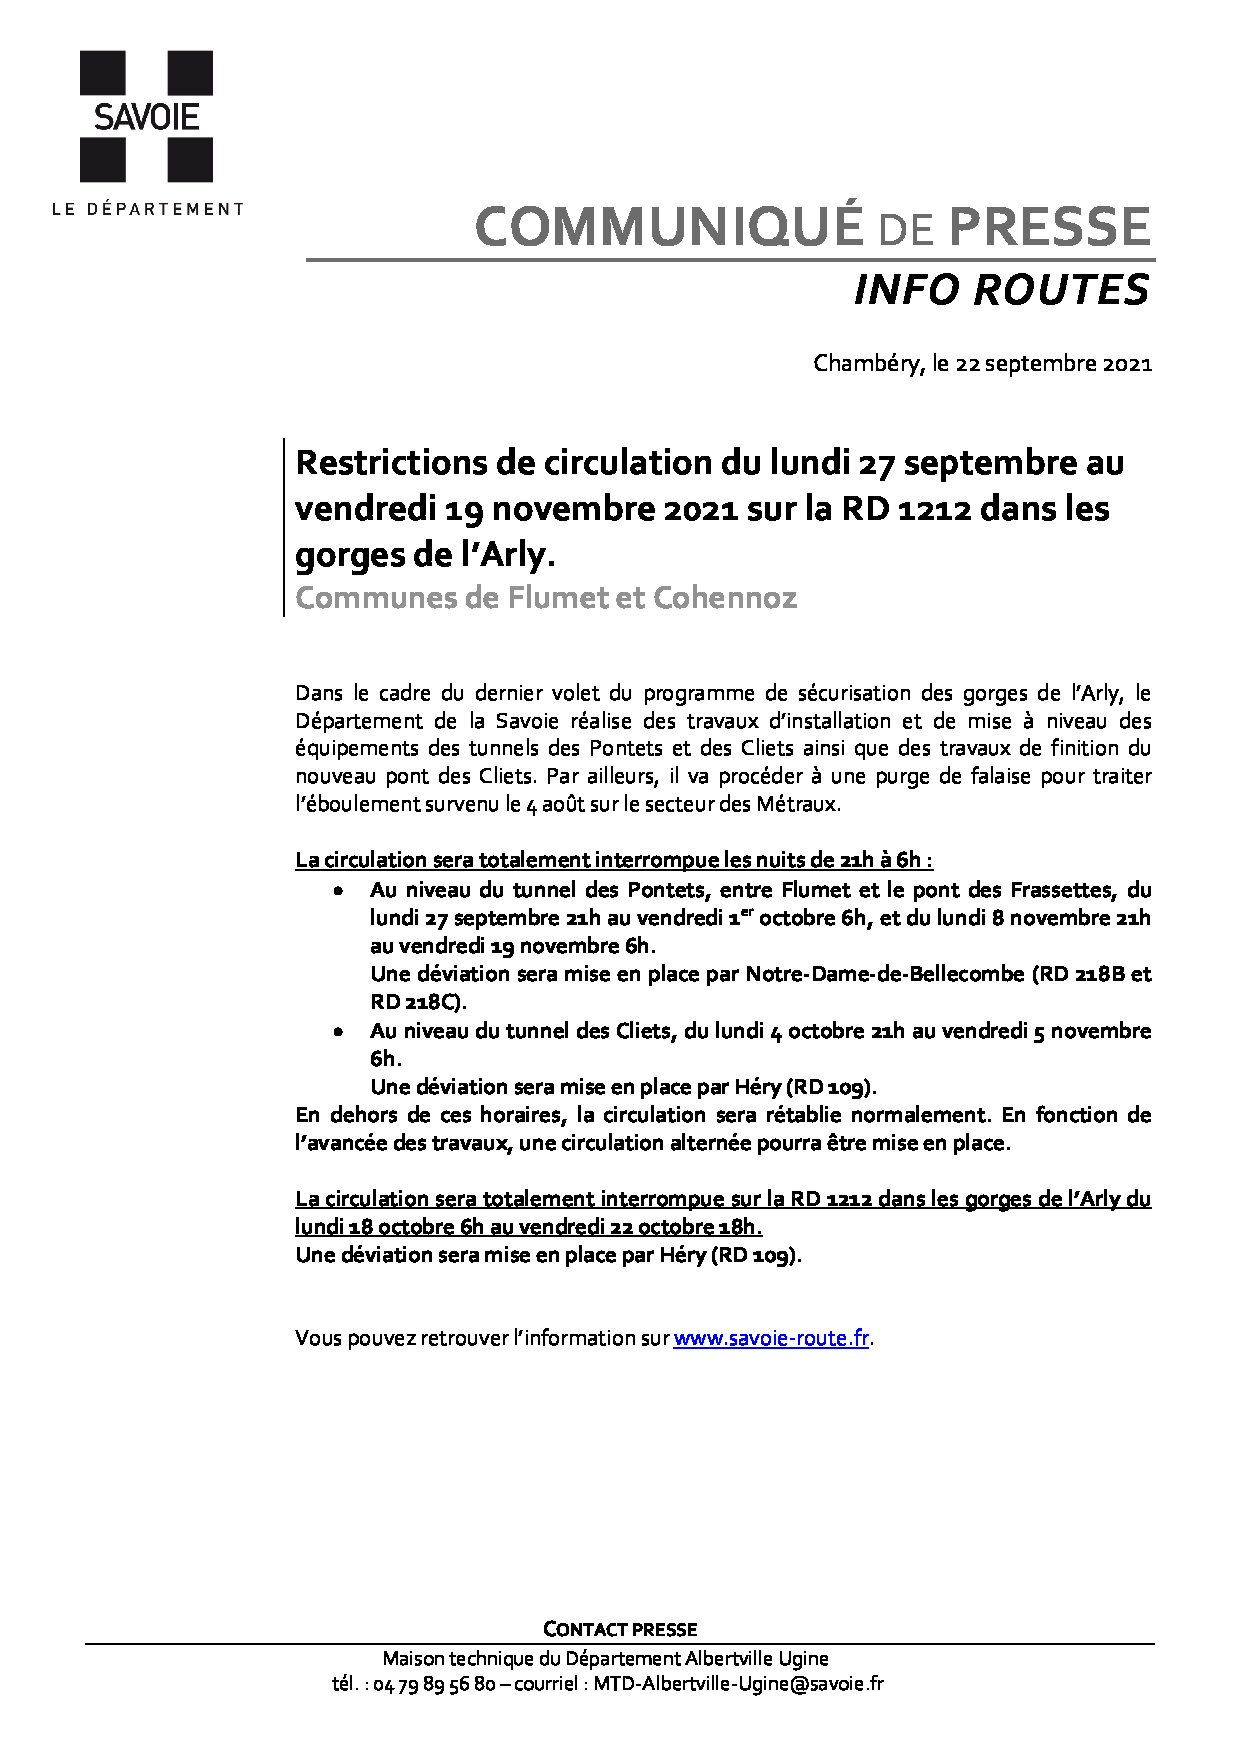 Restrictions circulation Gorges de lArly.jpg